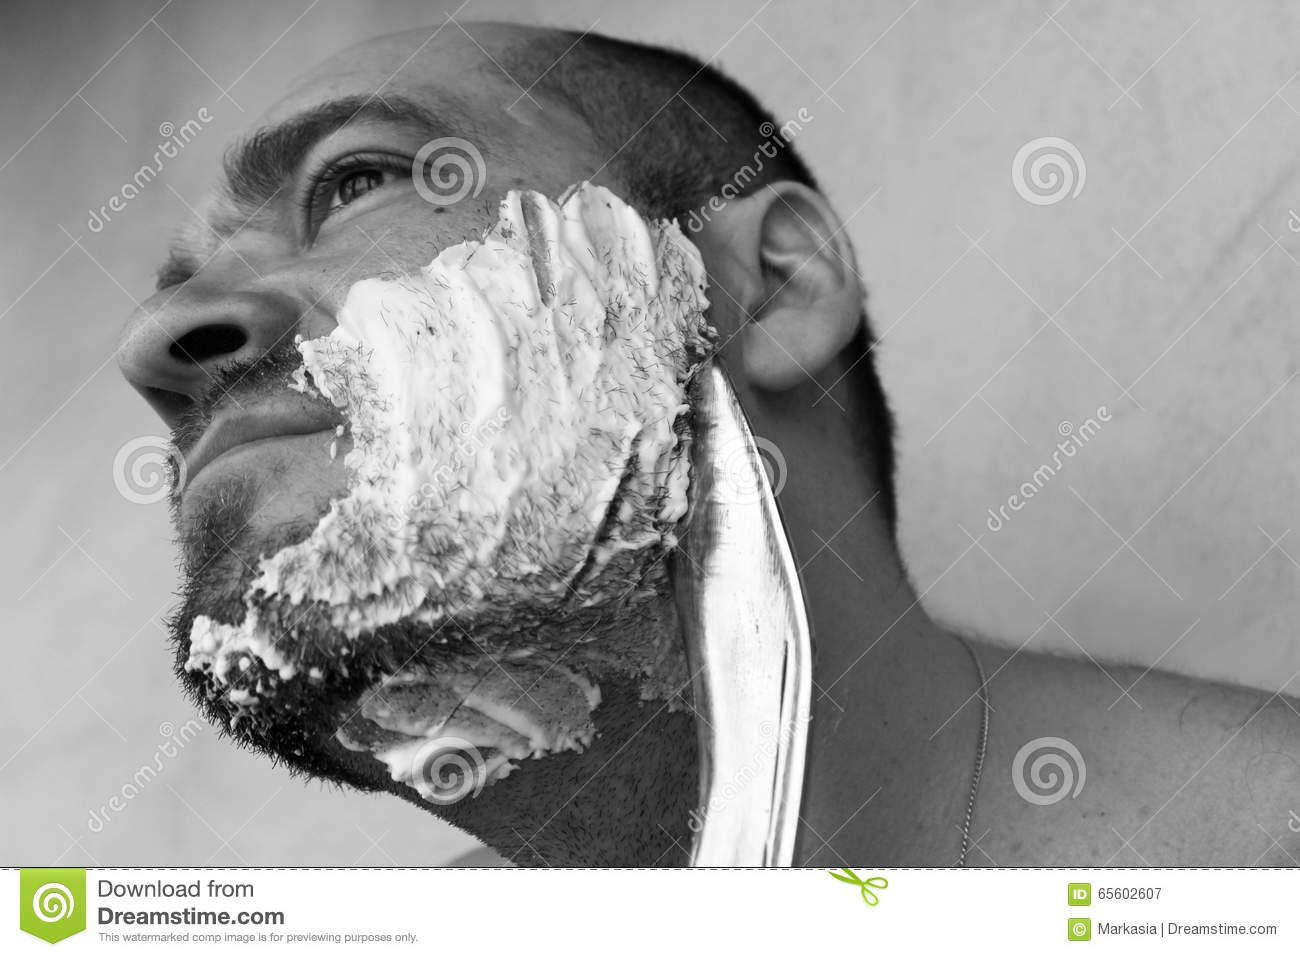 Man shaves his beard with a knife